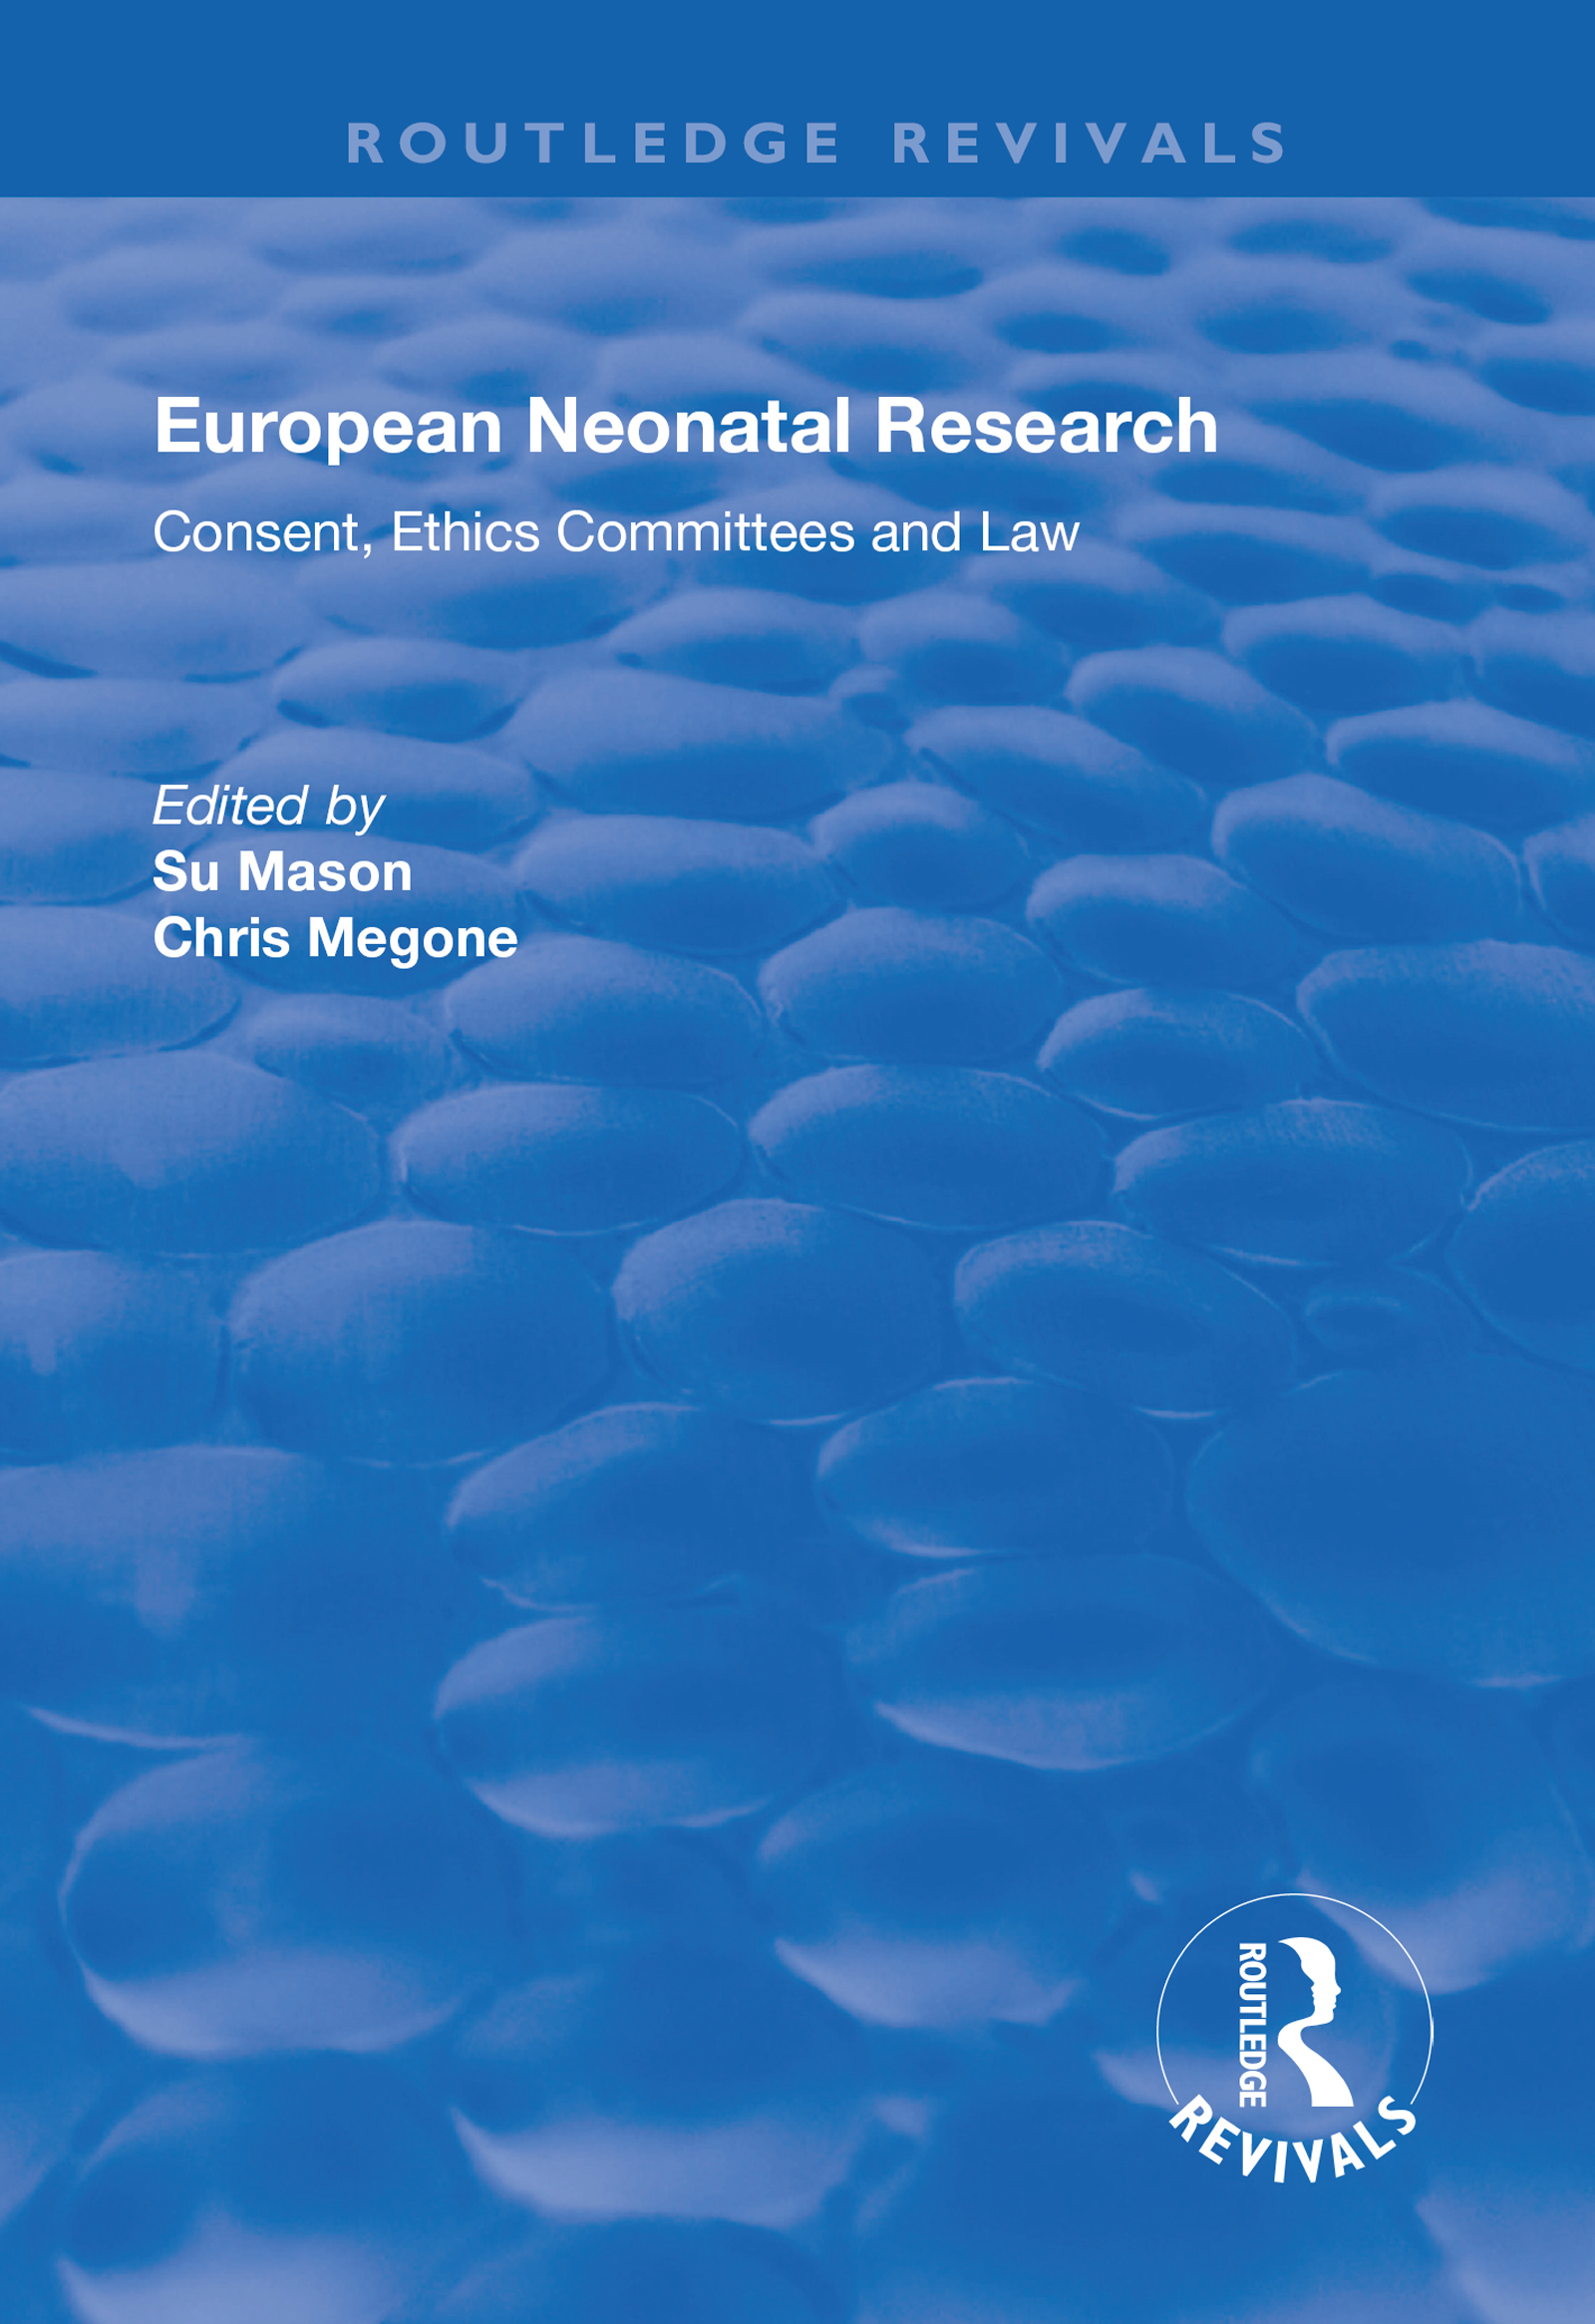 The Regulation of Neonatal Research in Spain